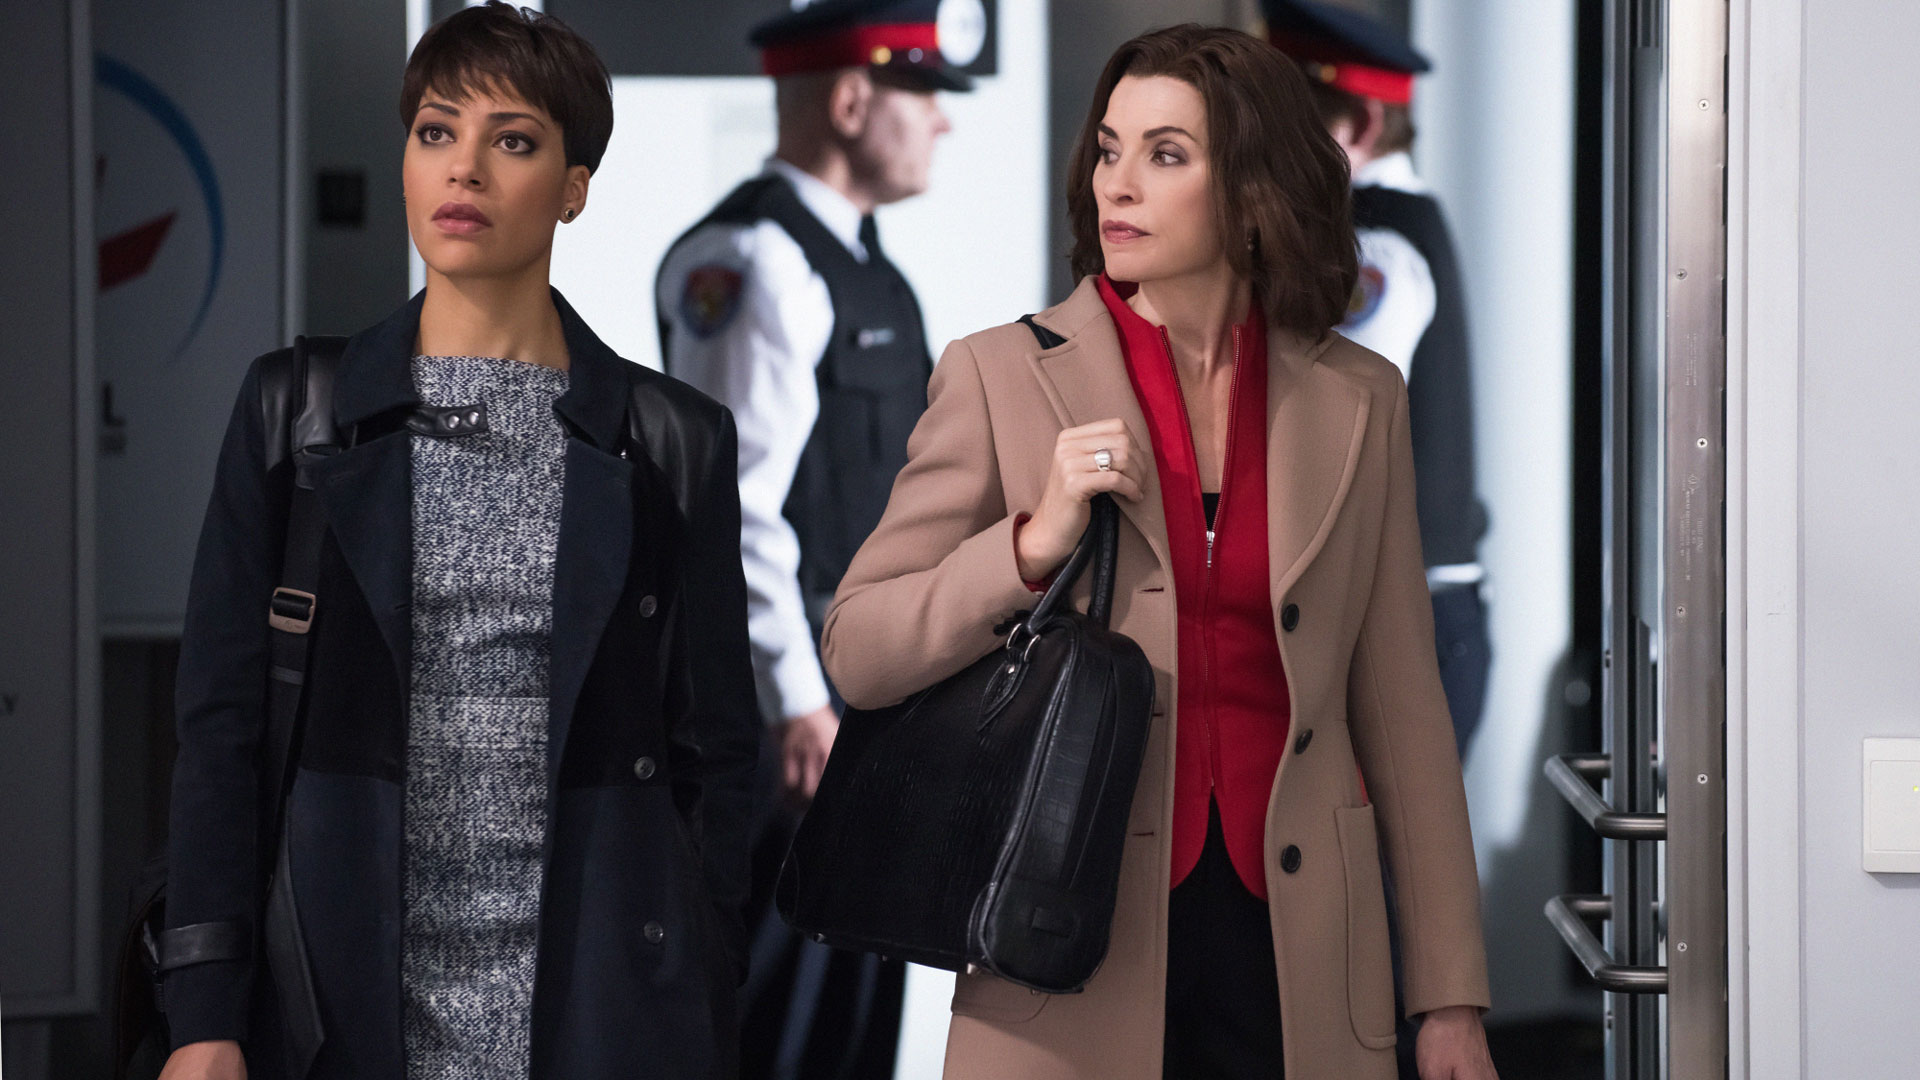 Lucca Quinn and Alicia Florrick arrive at the airport.